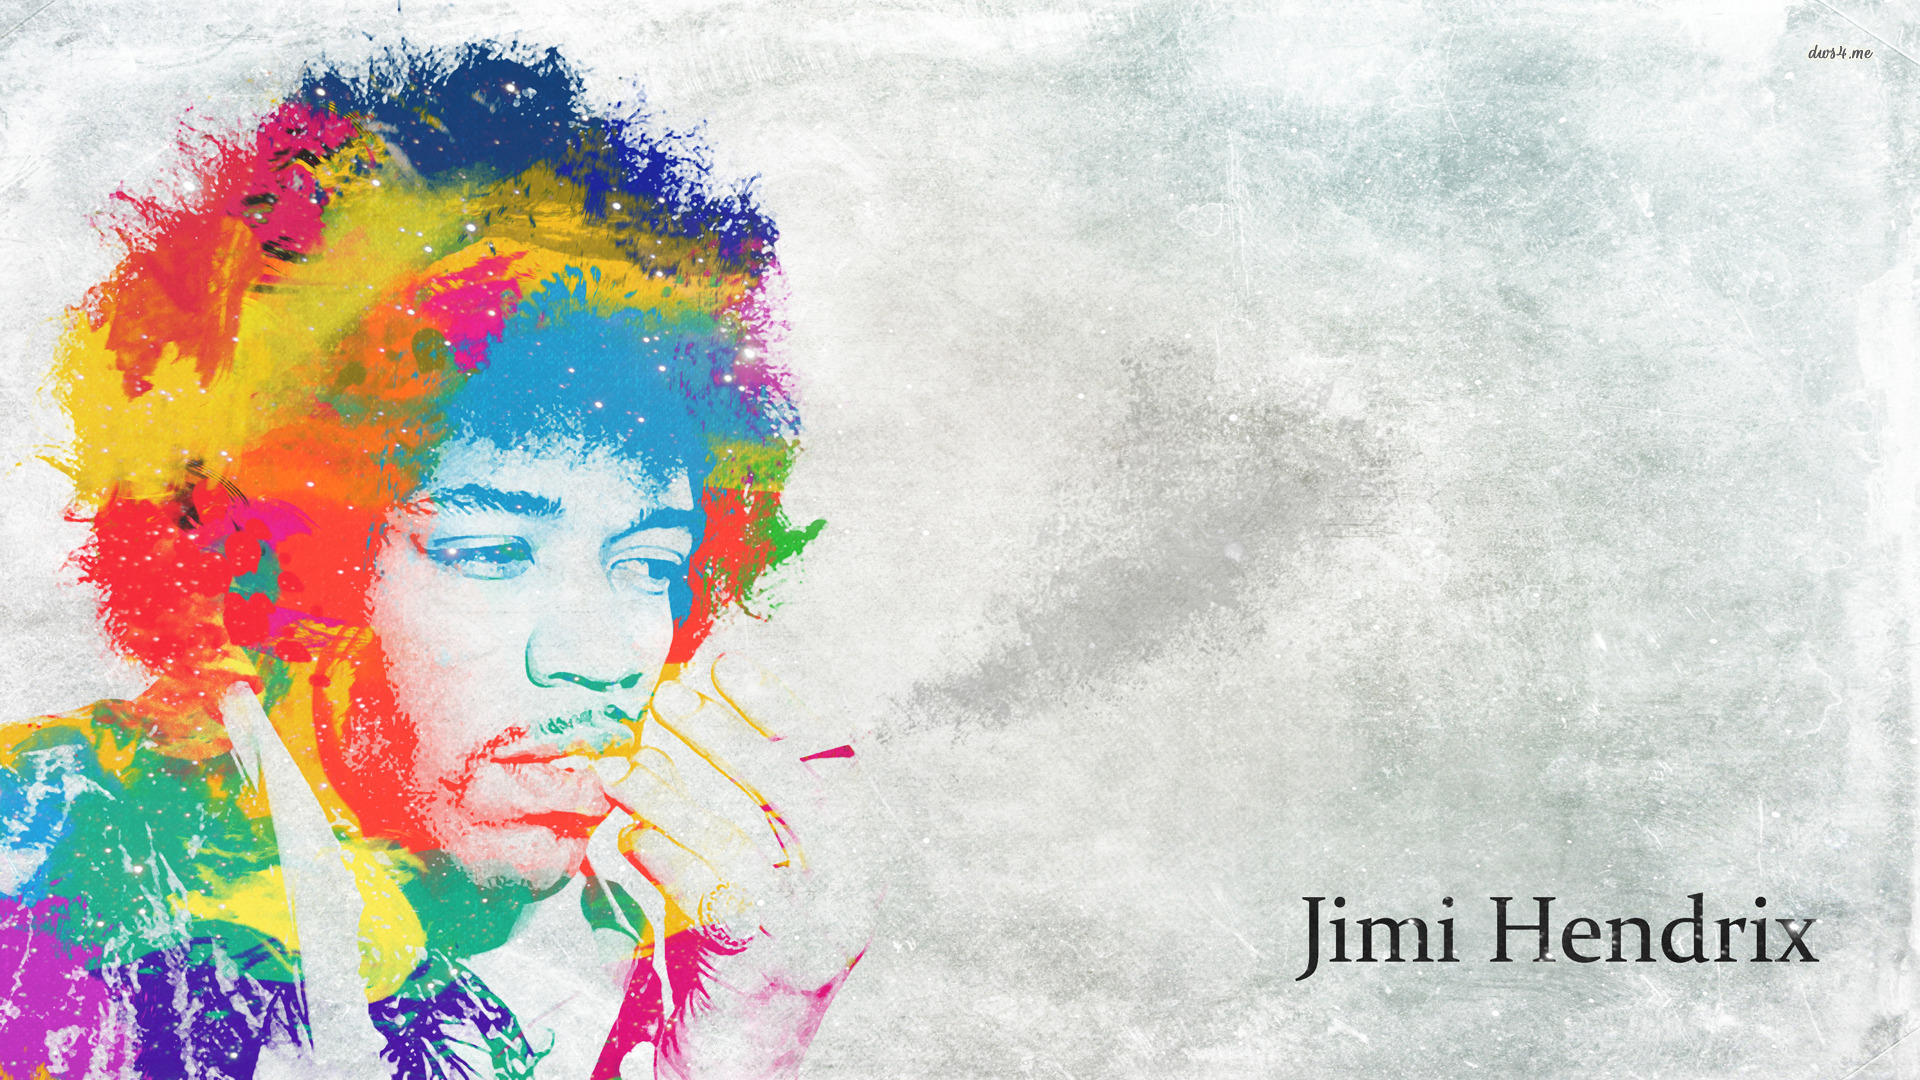 Jimi Hendrix hd wallpapers